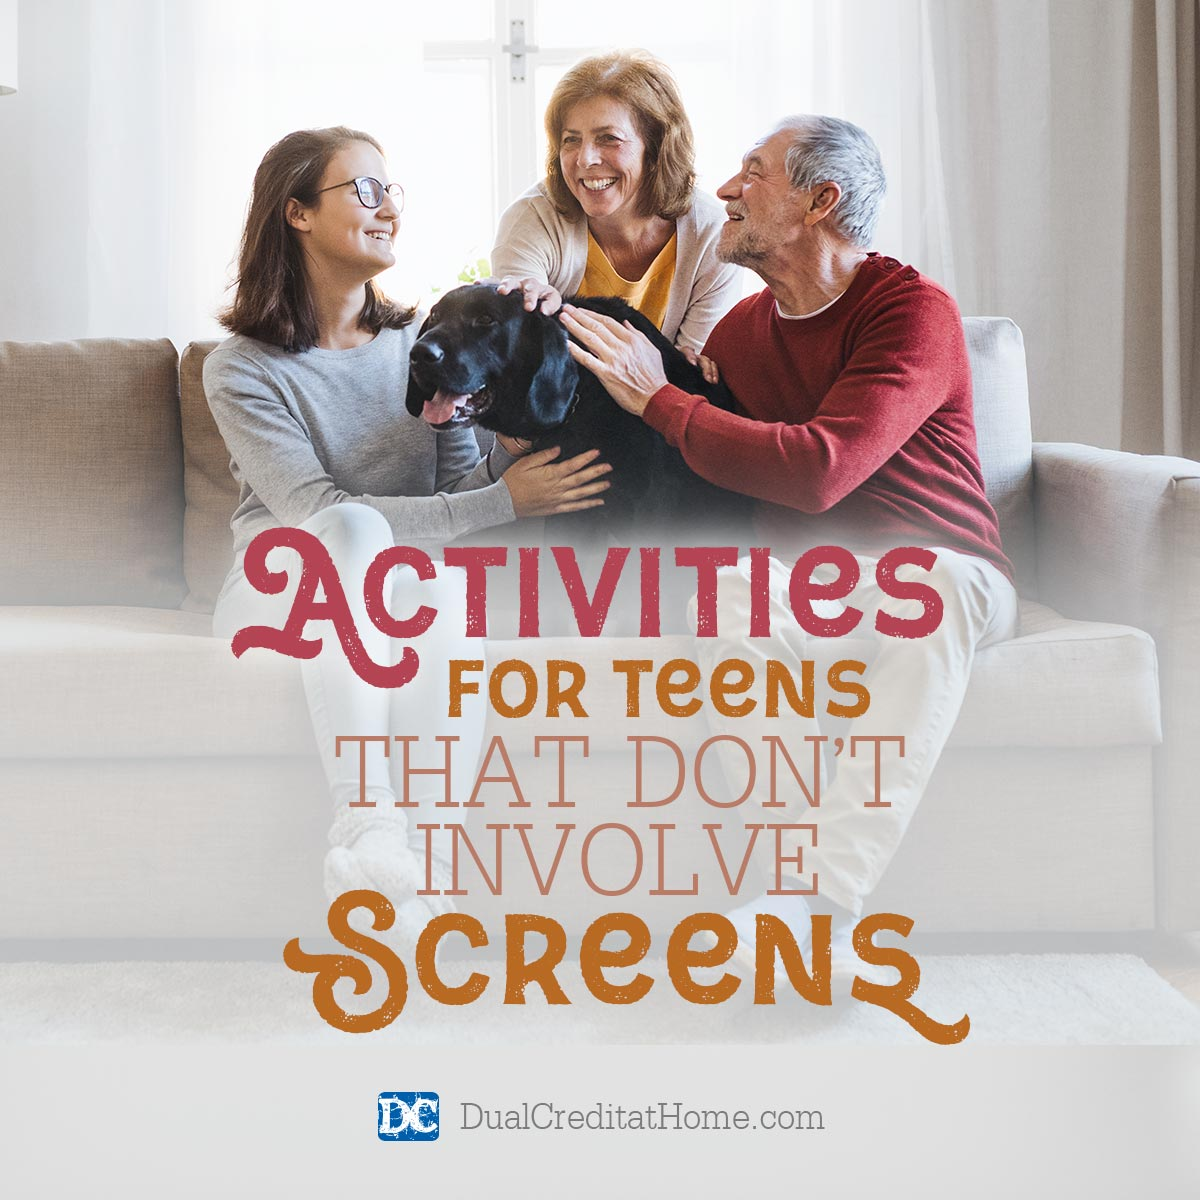 Activities for Teens that Don't Involve Screens